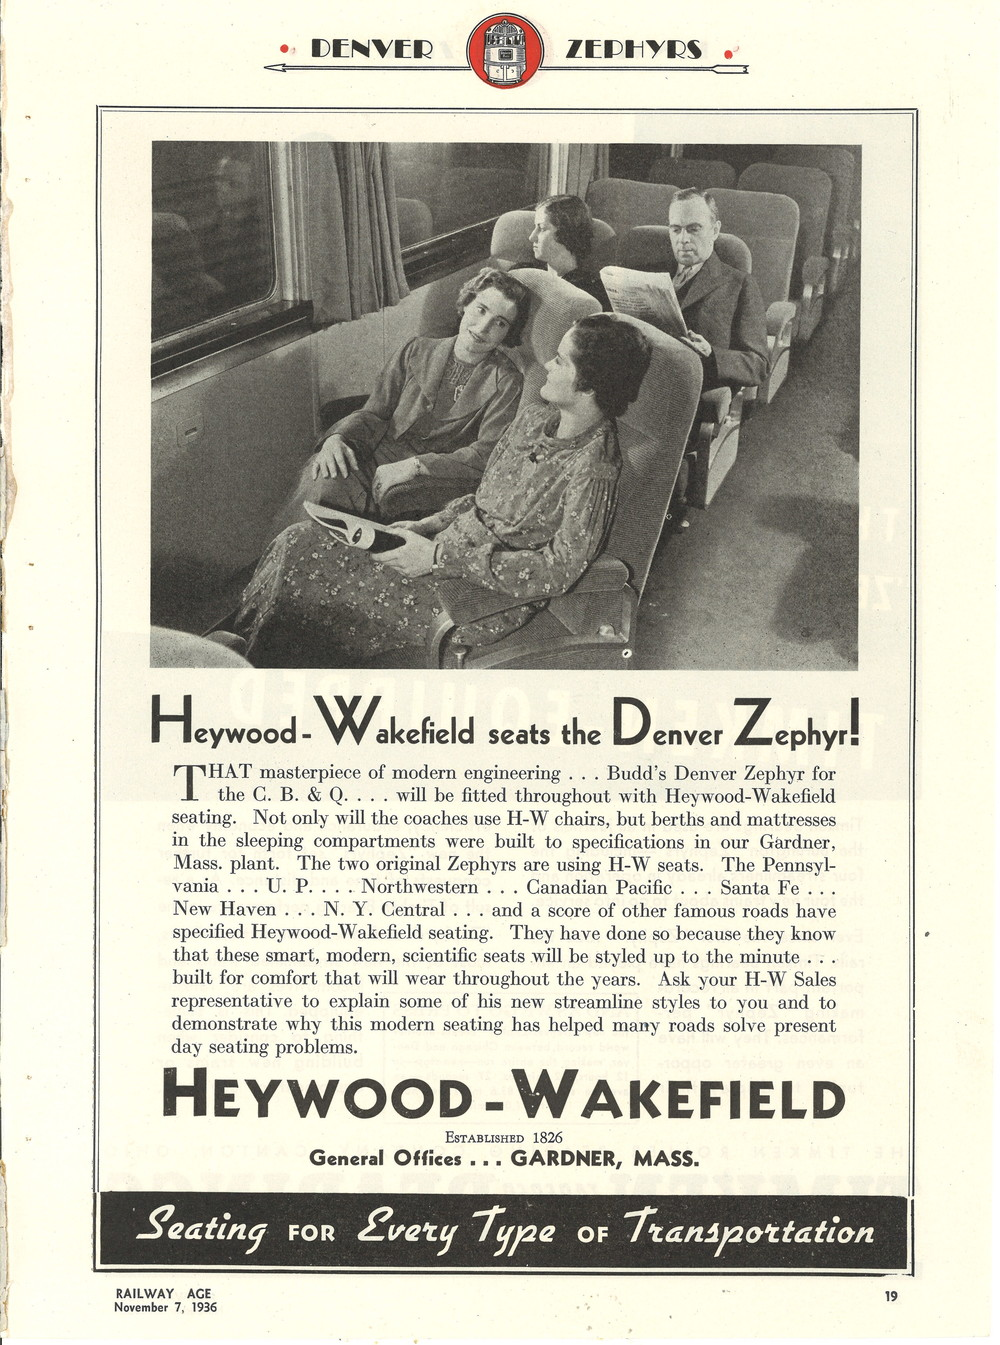 Heywood-Wakefield seats the Denver Zephyr!.jpg